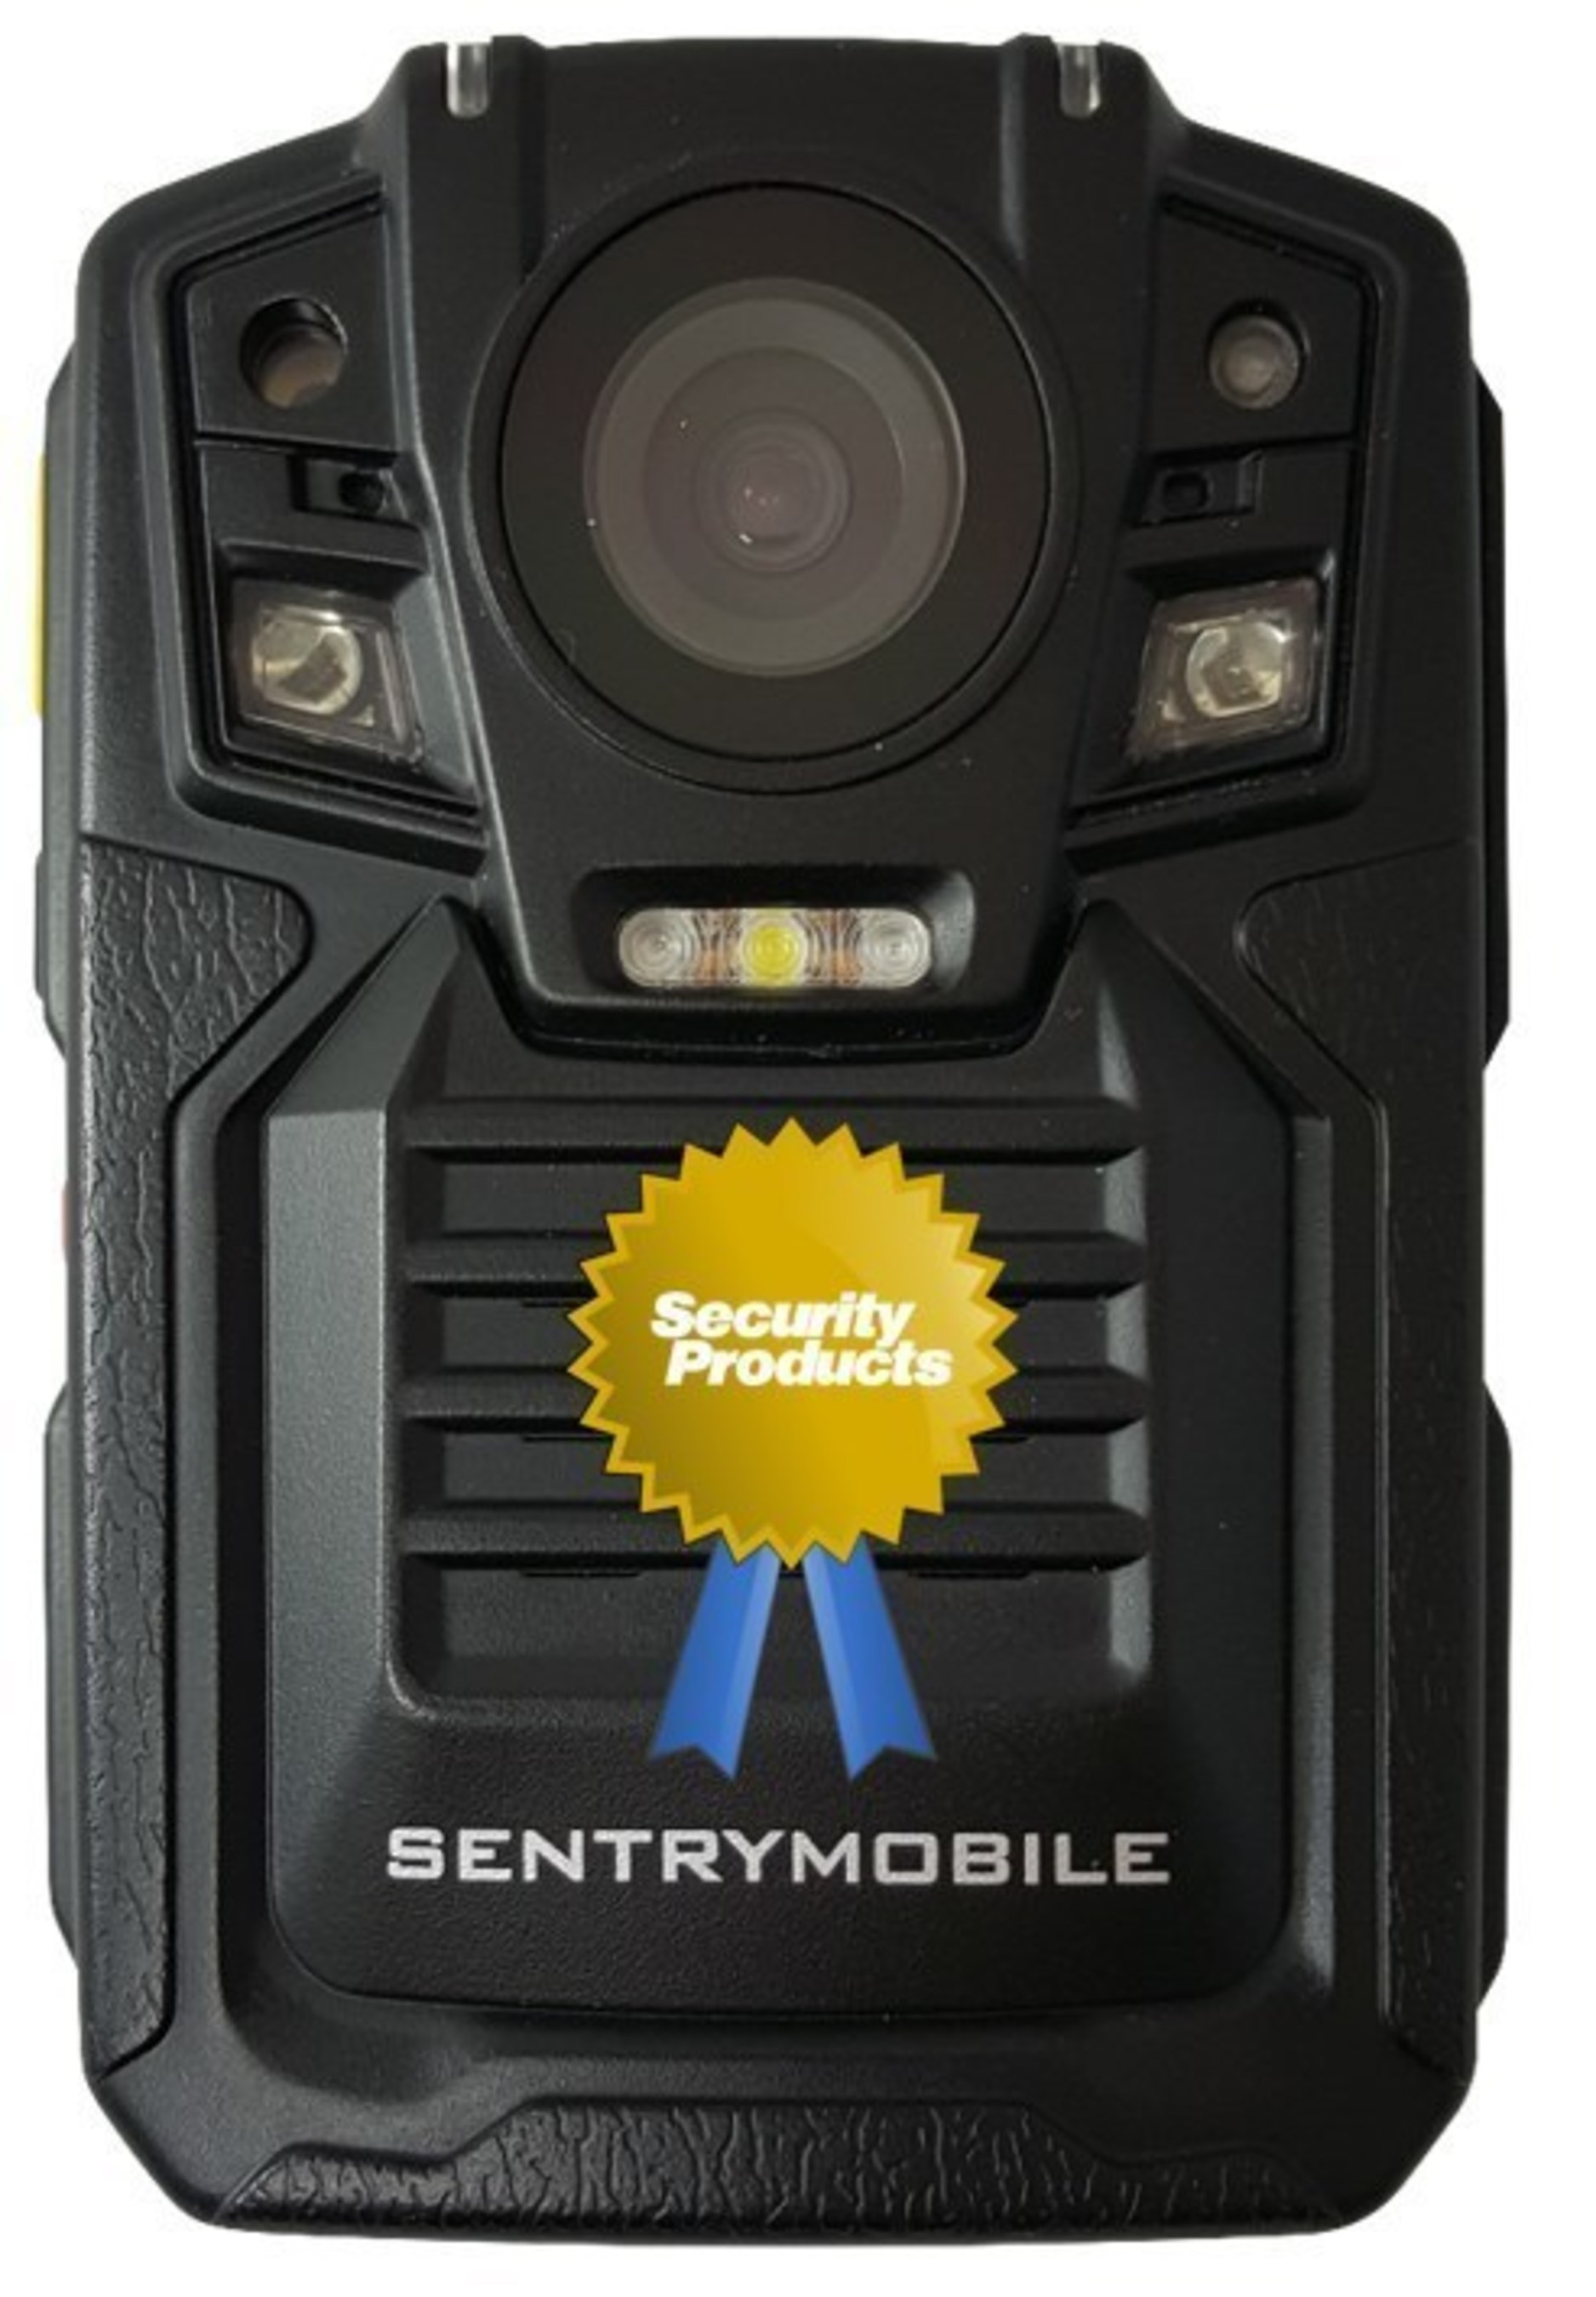 New Bodyworn Camera Technology Wins Product of the Year Award